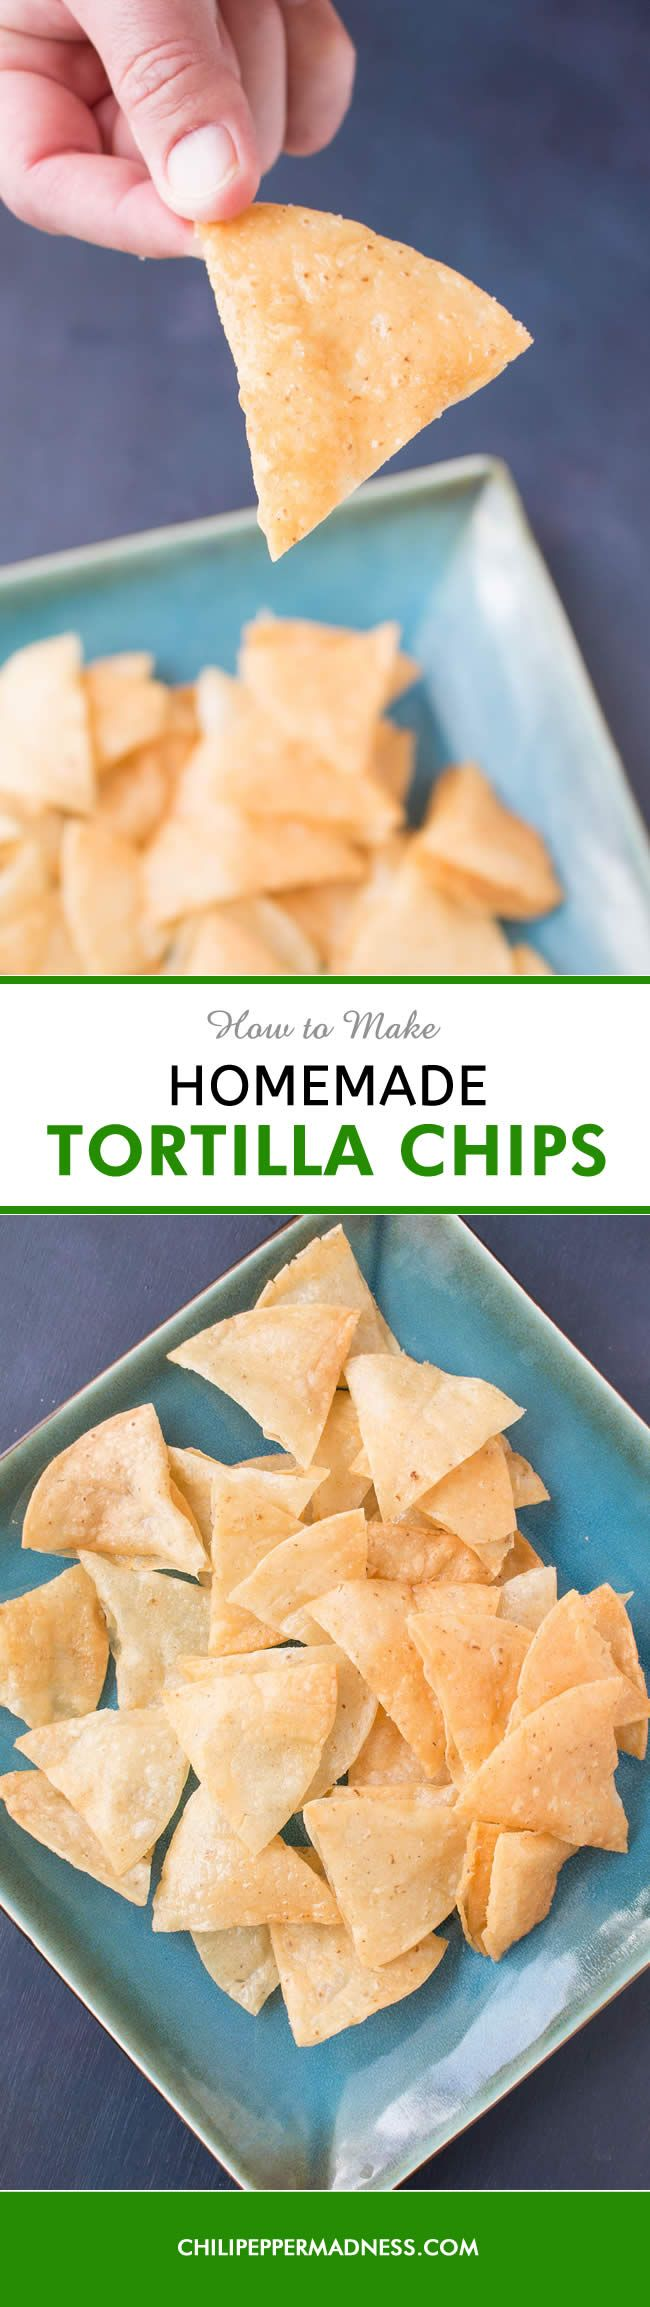 How to Make Homemade Crispy Tortilla Chips - Make your own crispy corn tortilla chips at home with this recipe. All you need is a bit of oil, corn tortillas, and salt. They're so much better when you make them on your own. They are best lightly fried, but you can also bake them. - Includes video recipe.